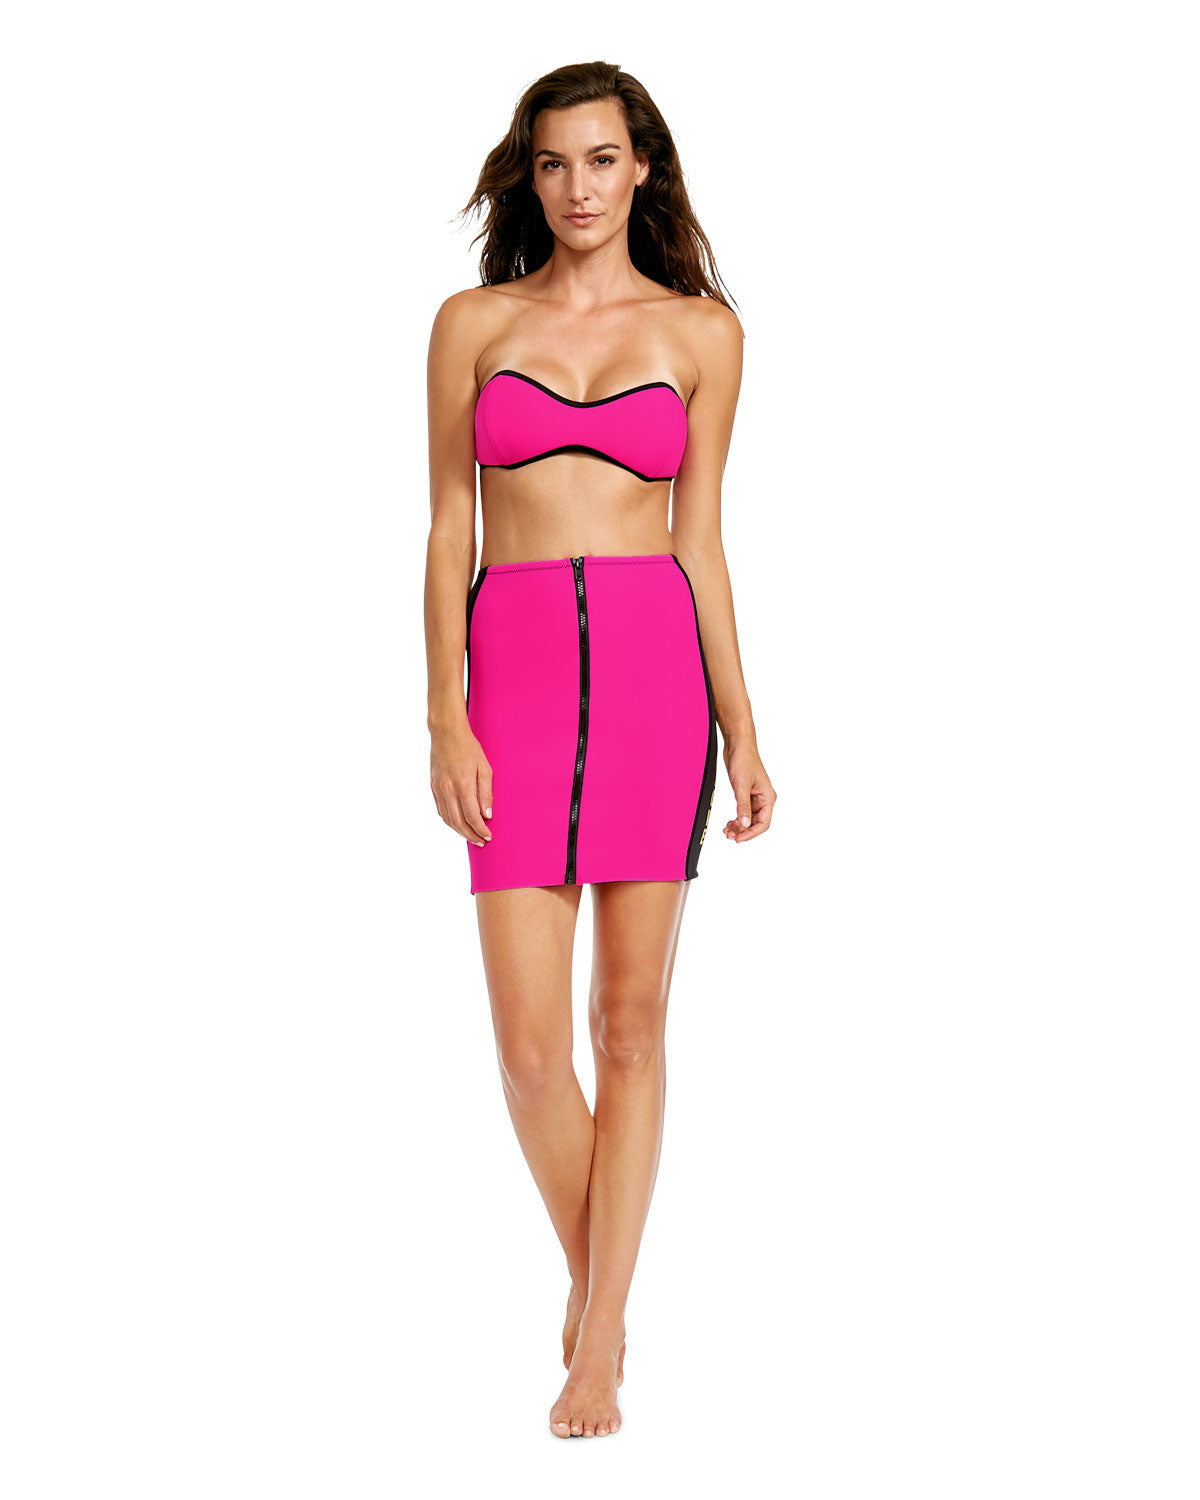 '80s Throwback Need You Tonight Skirt - Flamingo Pink